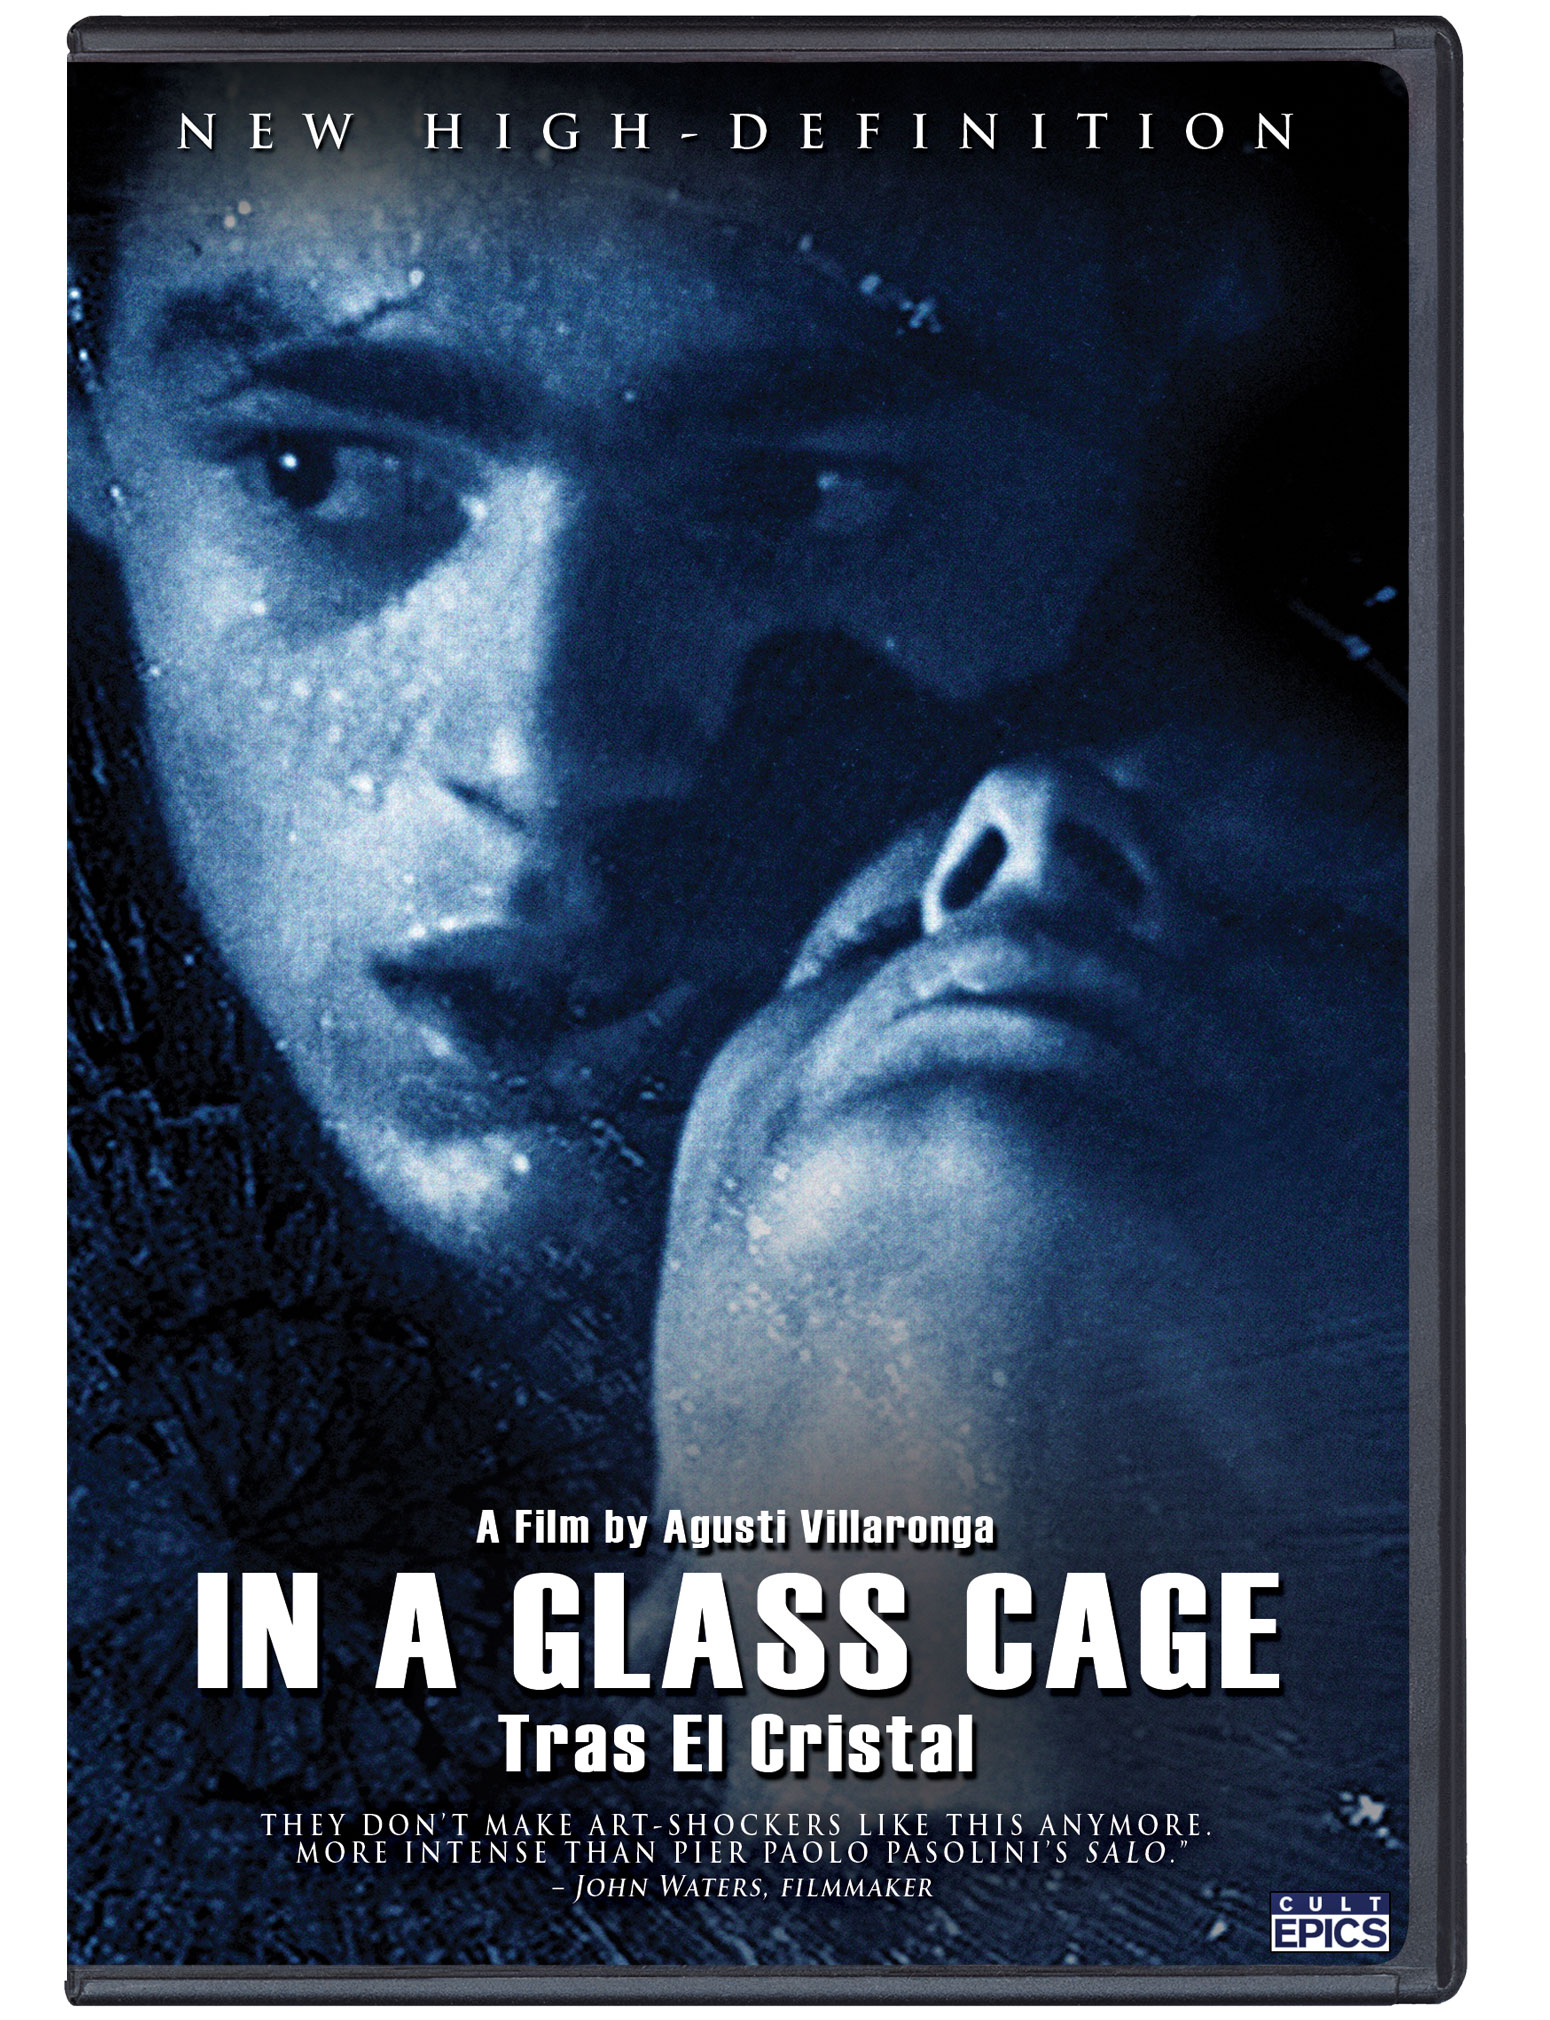 In A Glass Cage Cult Epics